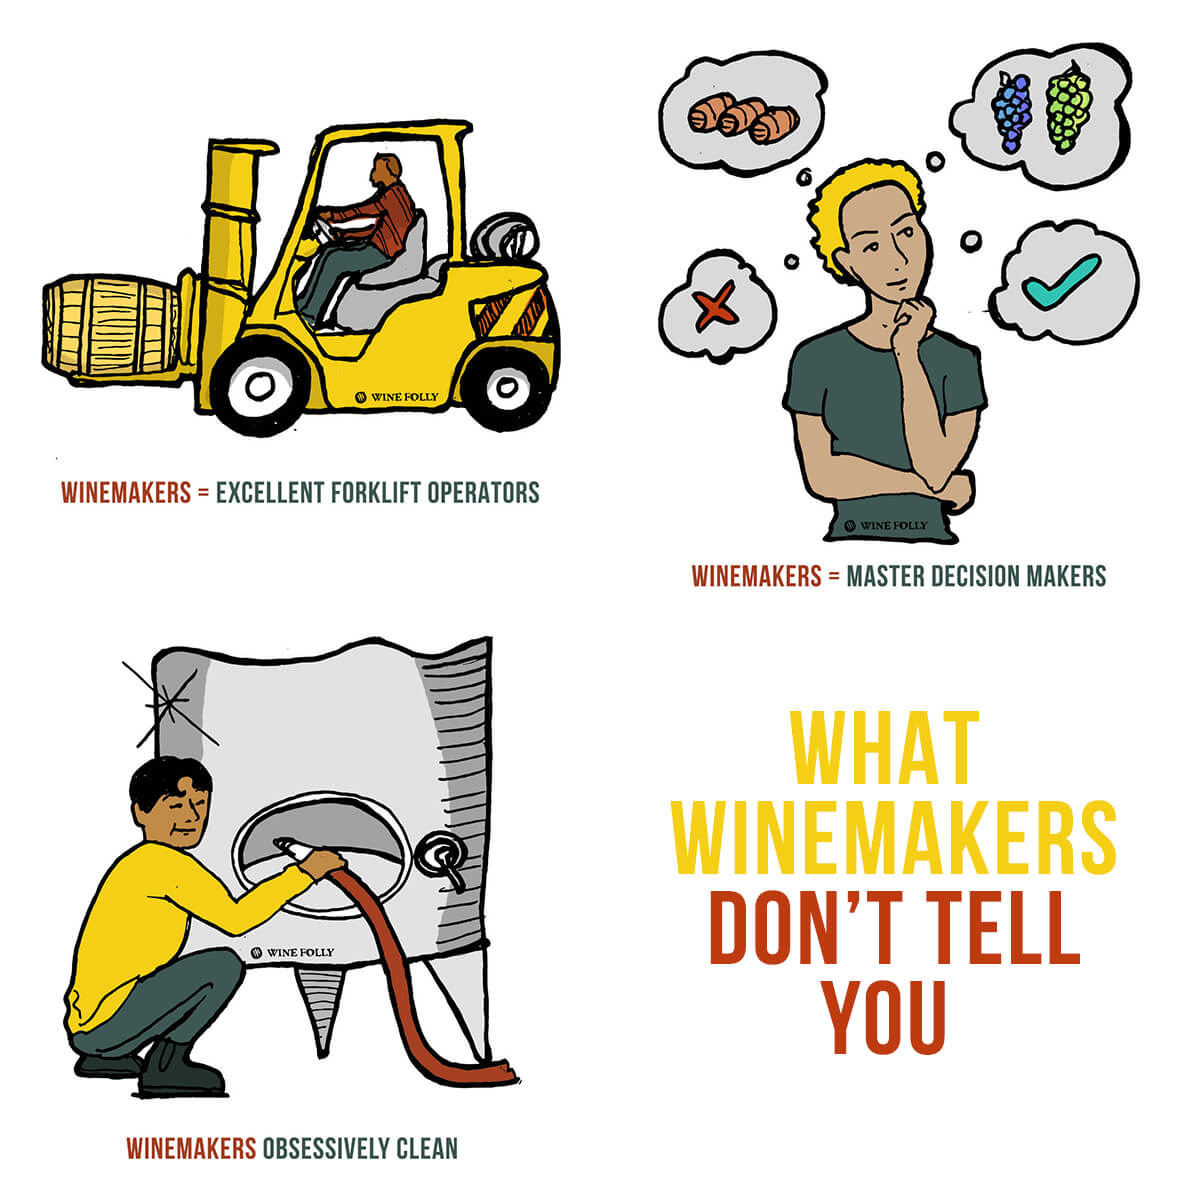 What winemakers don't tell you about the job illustration by Wine Folly